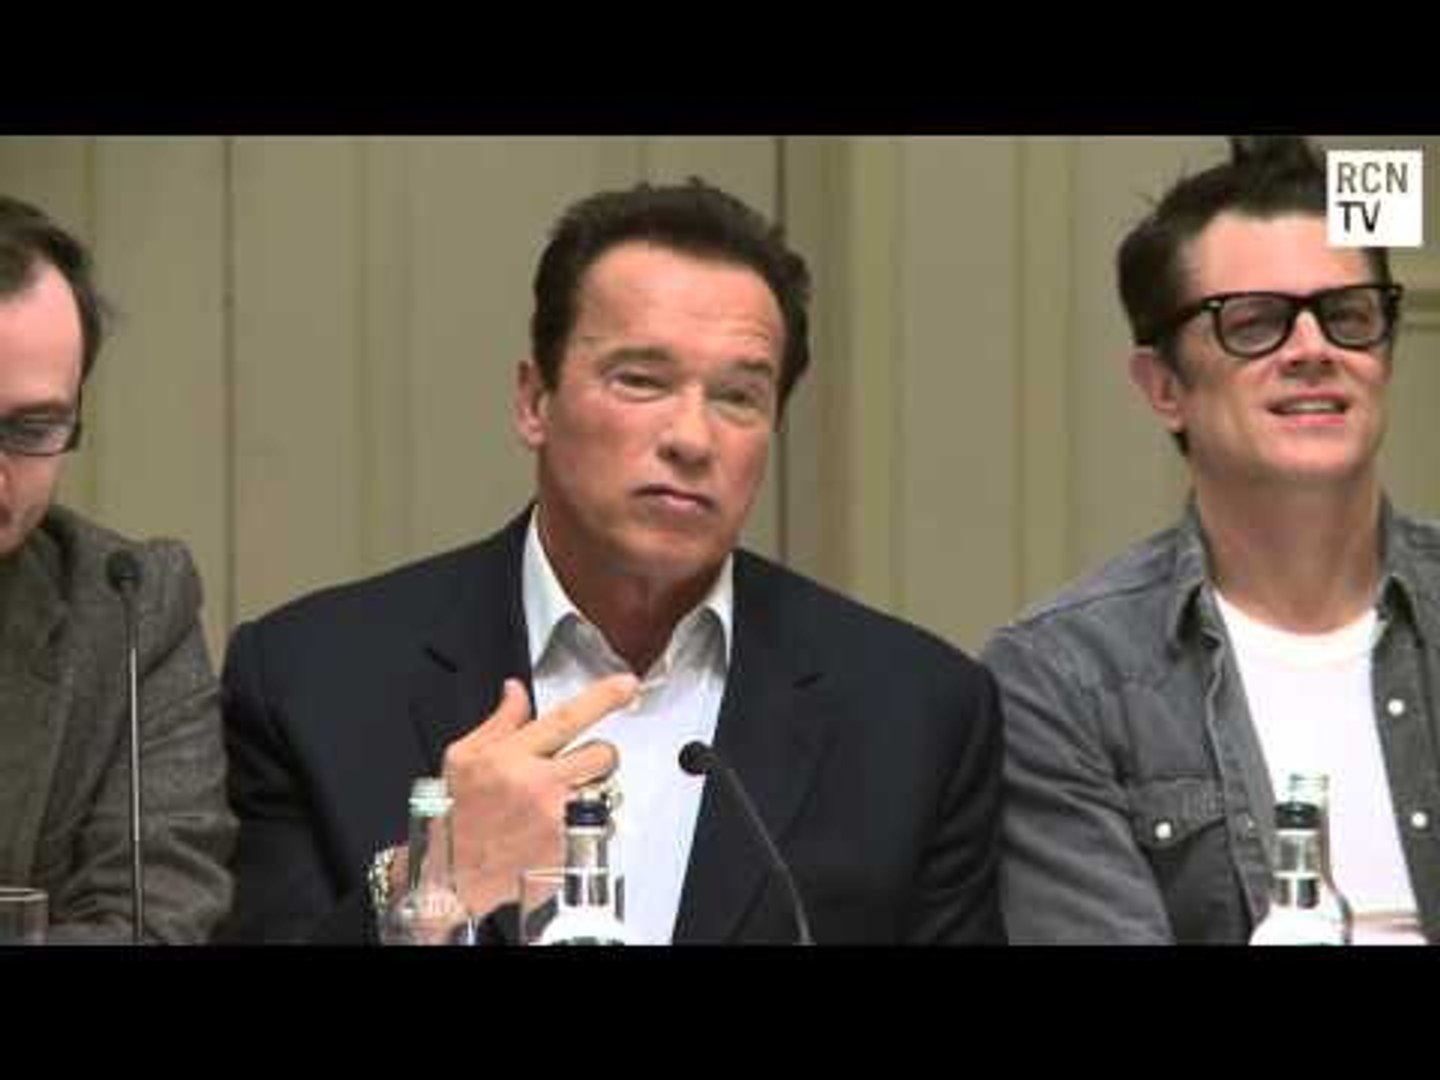 Arnold Schwarzenegger Interview One Liners & Jackass - The Last Stand Premiere Press Conferences